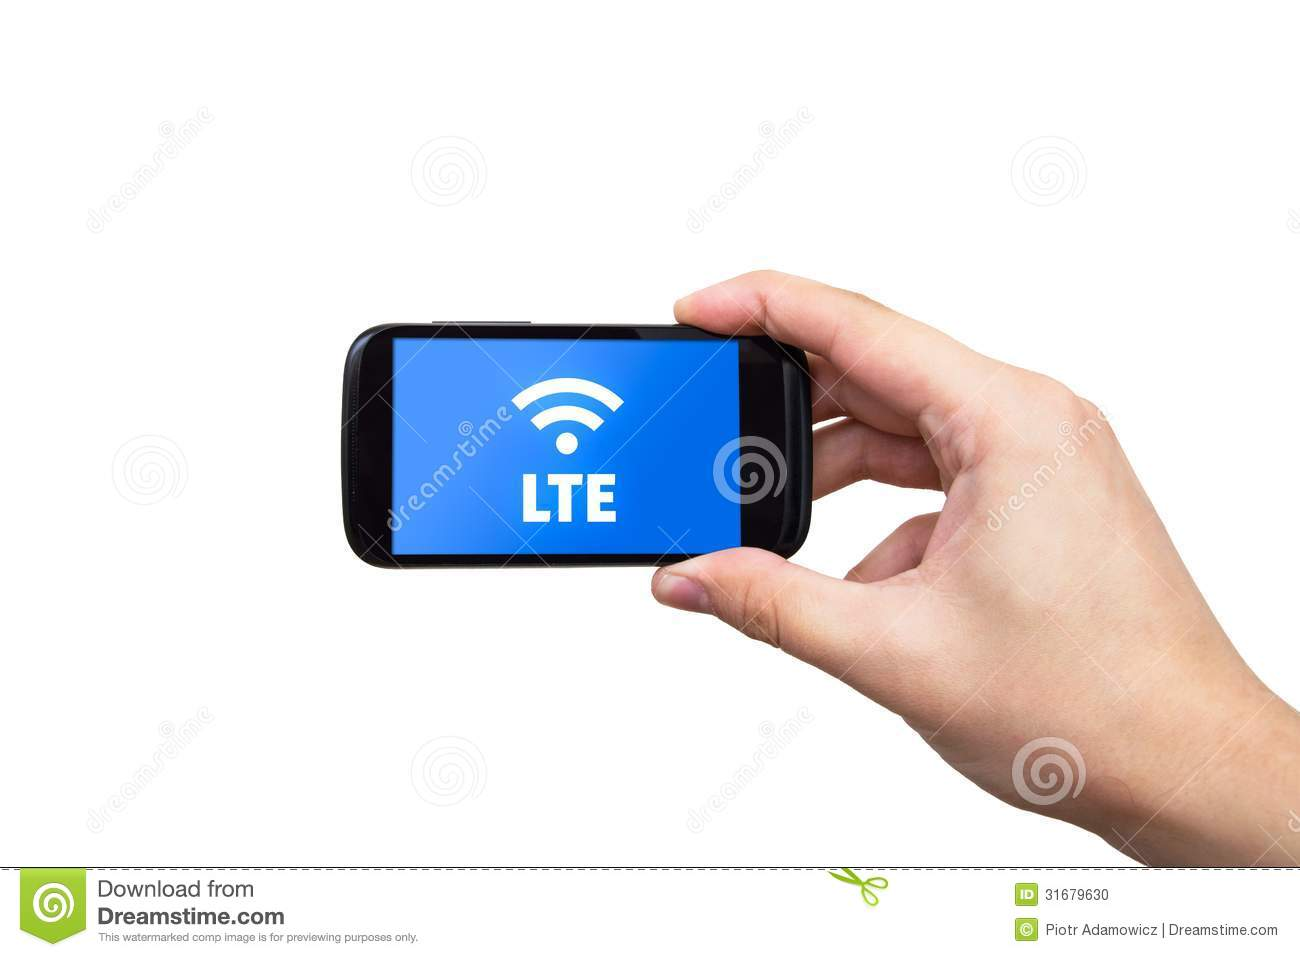 how to connect mobile to computer internet